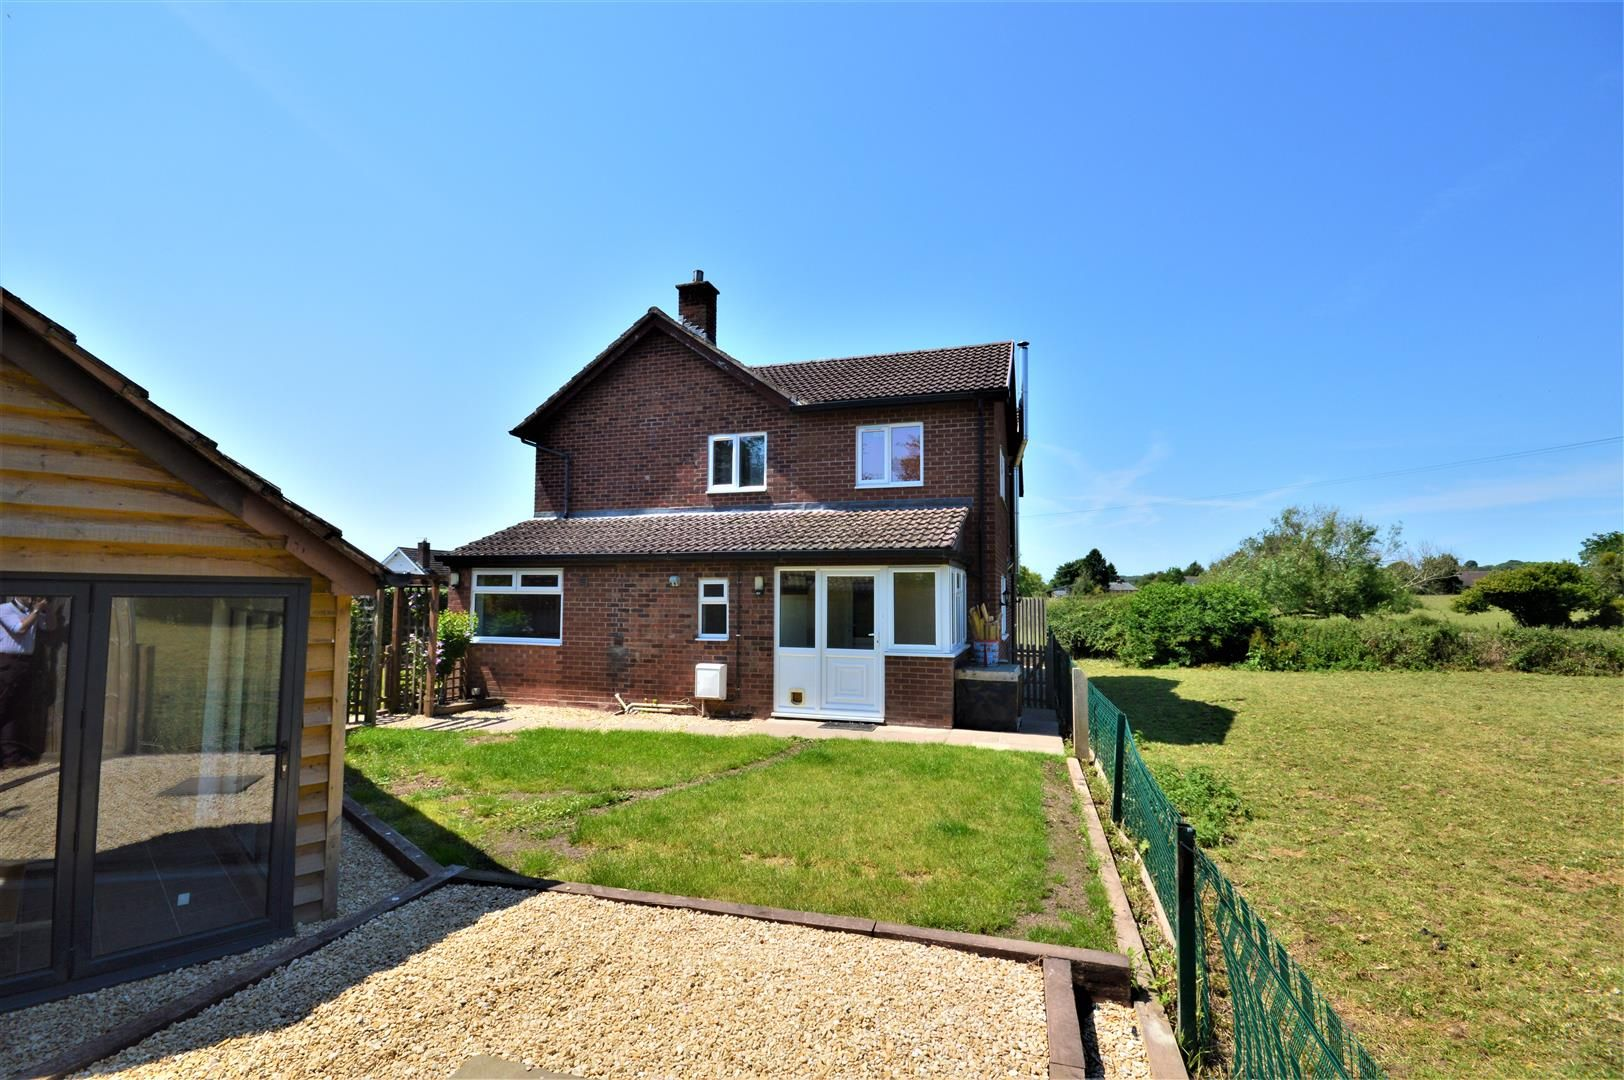 5 bed detached for sale in Sutton St. Nicholas  - Property Image 2